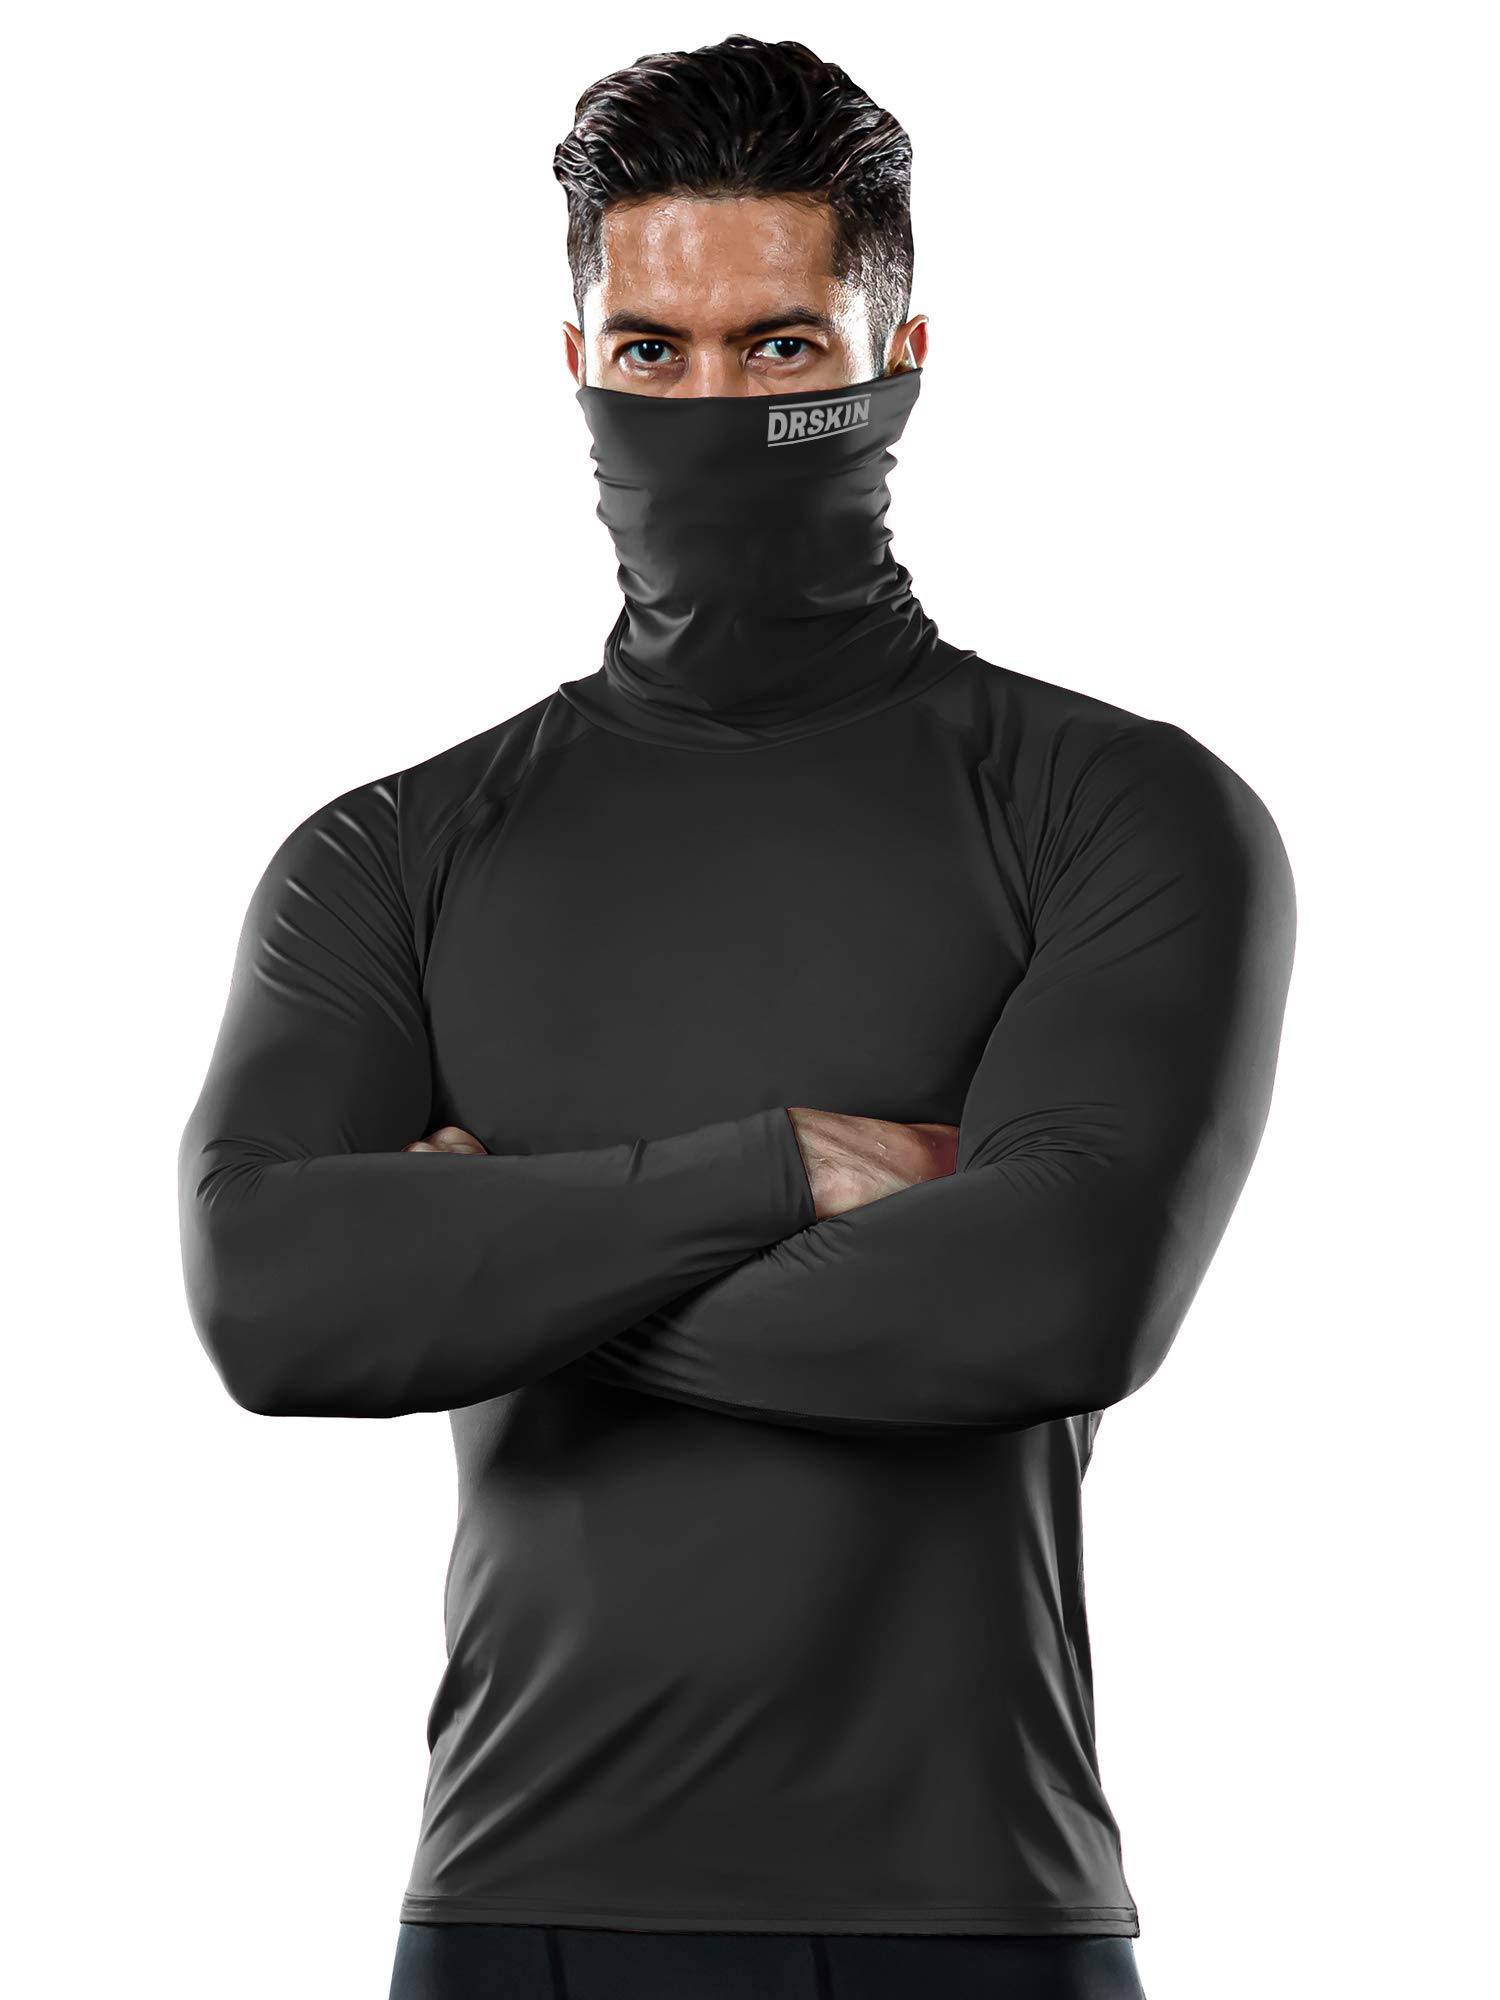 DRSKIN MASK Turtleneck Compression Shirts Top Dry Sports Baselayer Running Long Sleeve Thermal Cold Men